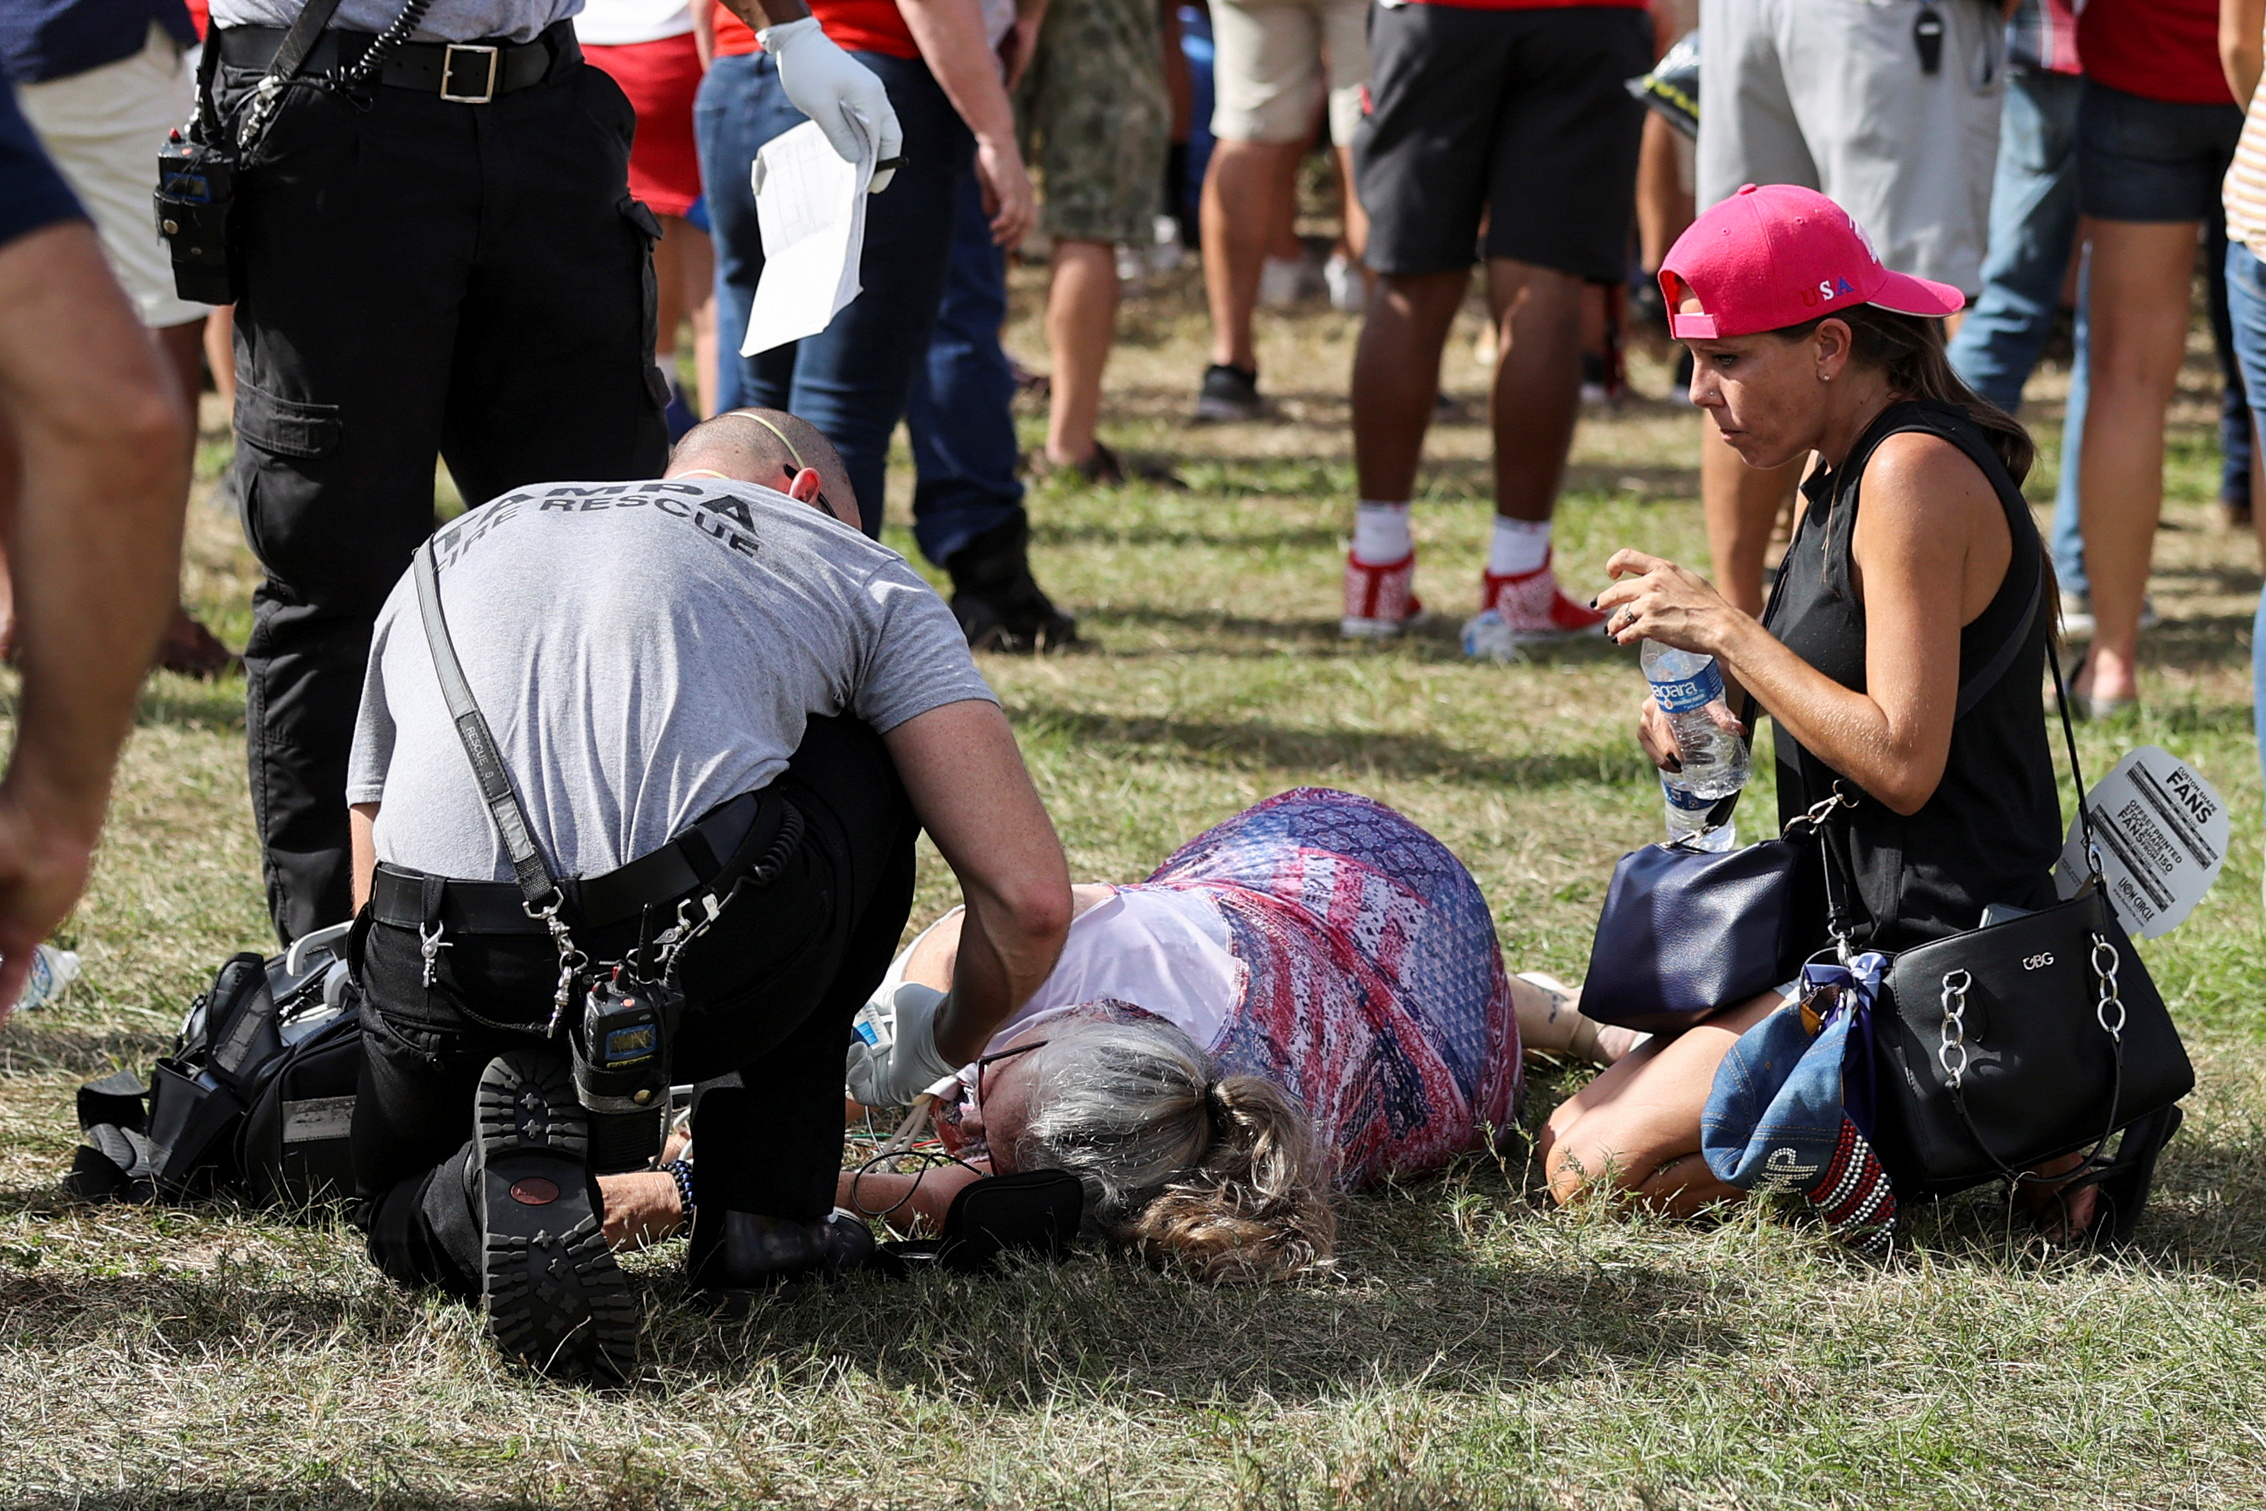 Passed out at Tampa Trump Rally